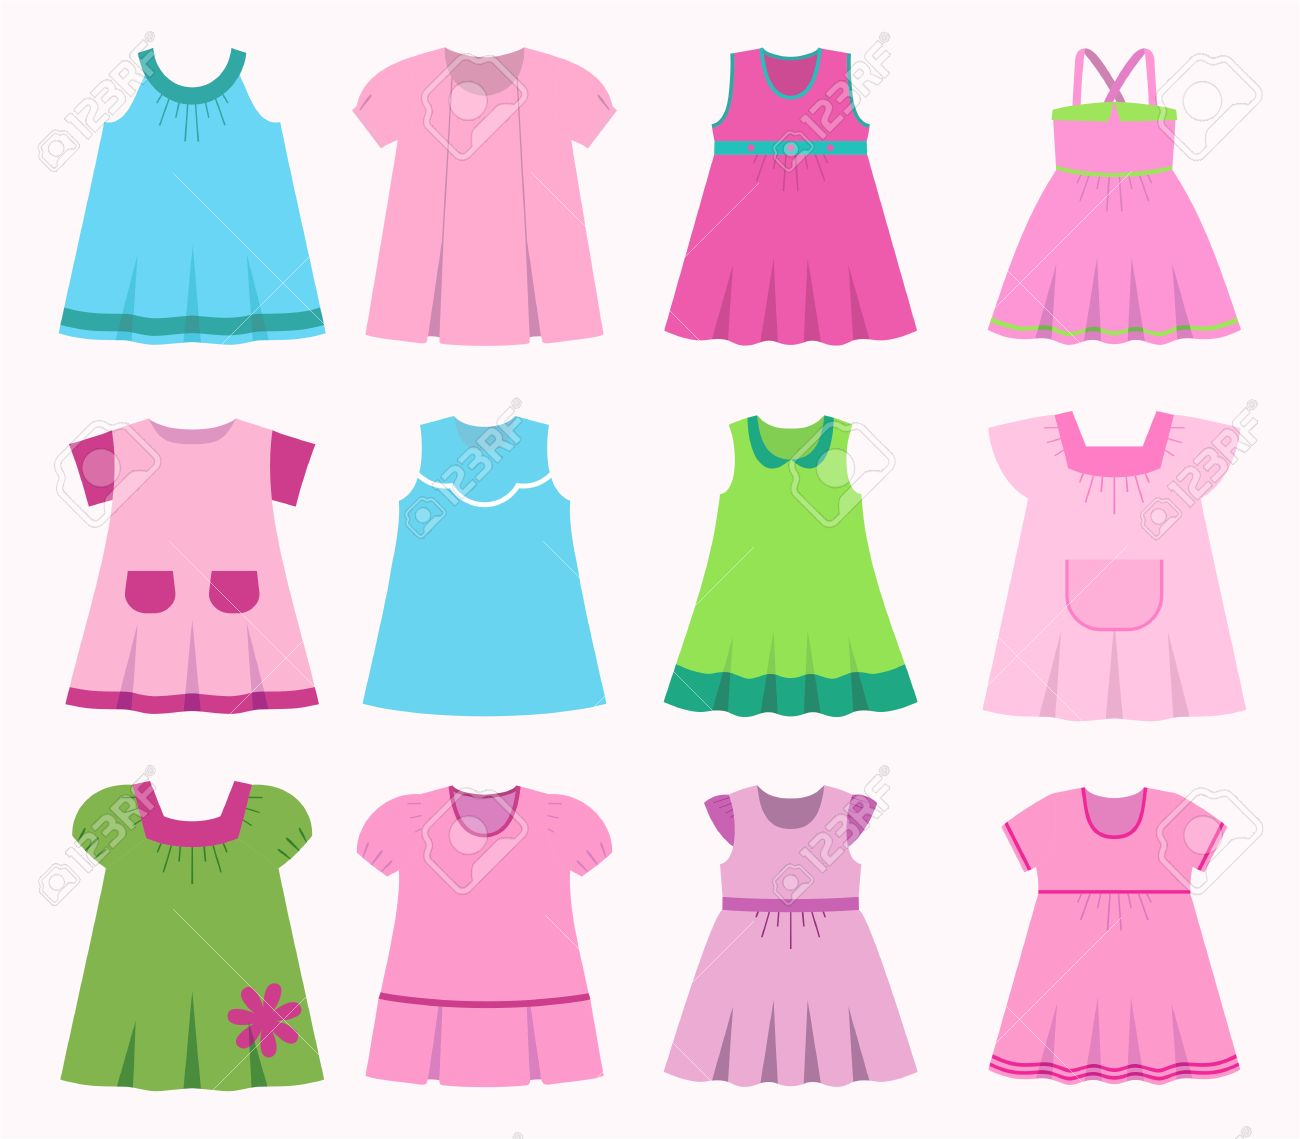 b8e3de01bbe0 Set children s summer dresses. Collection cute clothes for girls. Stock  Vector – 62968700